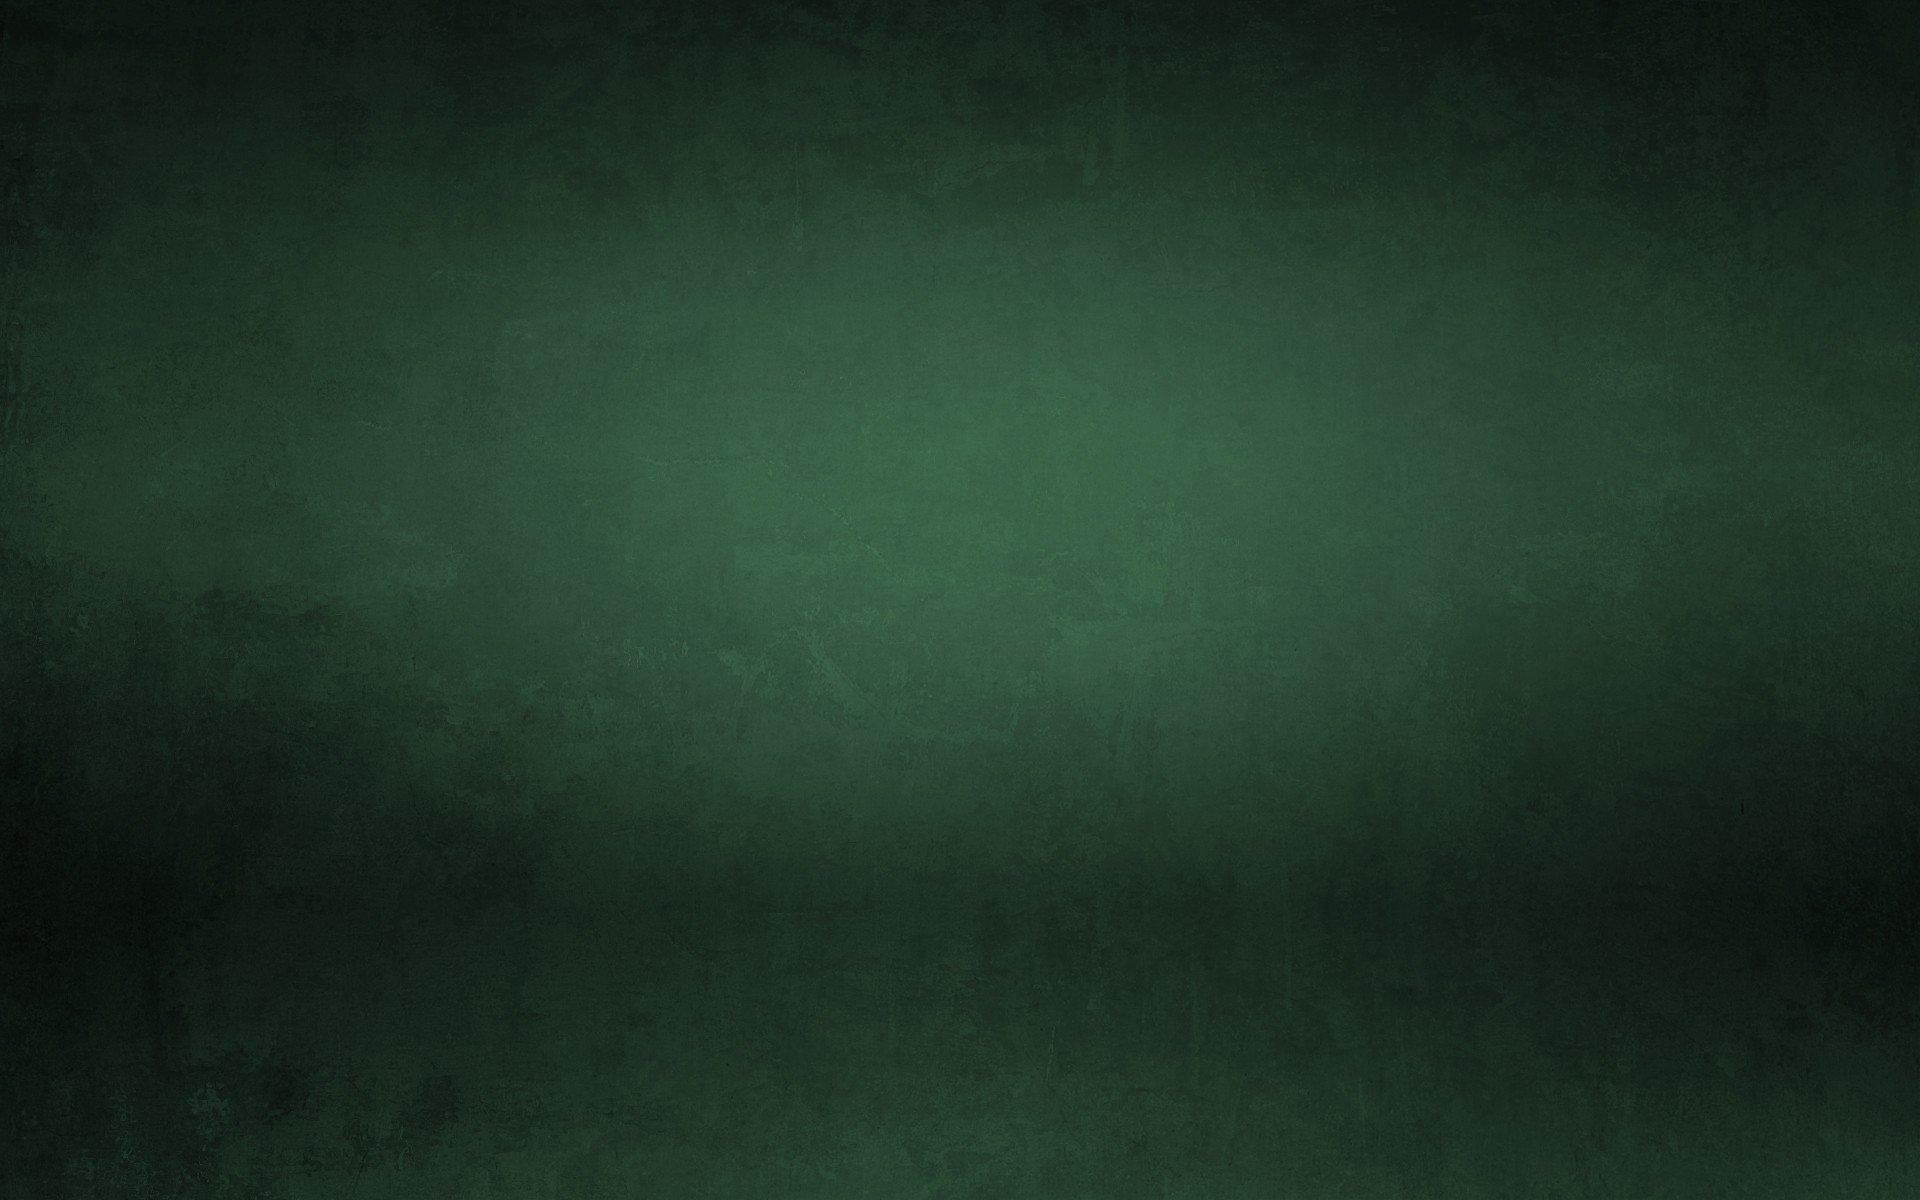 grunge dark green wallpapers grunge dark green stock photos 1920x1200